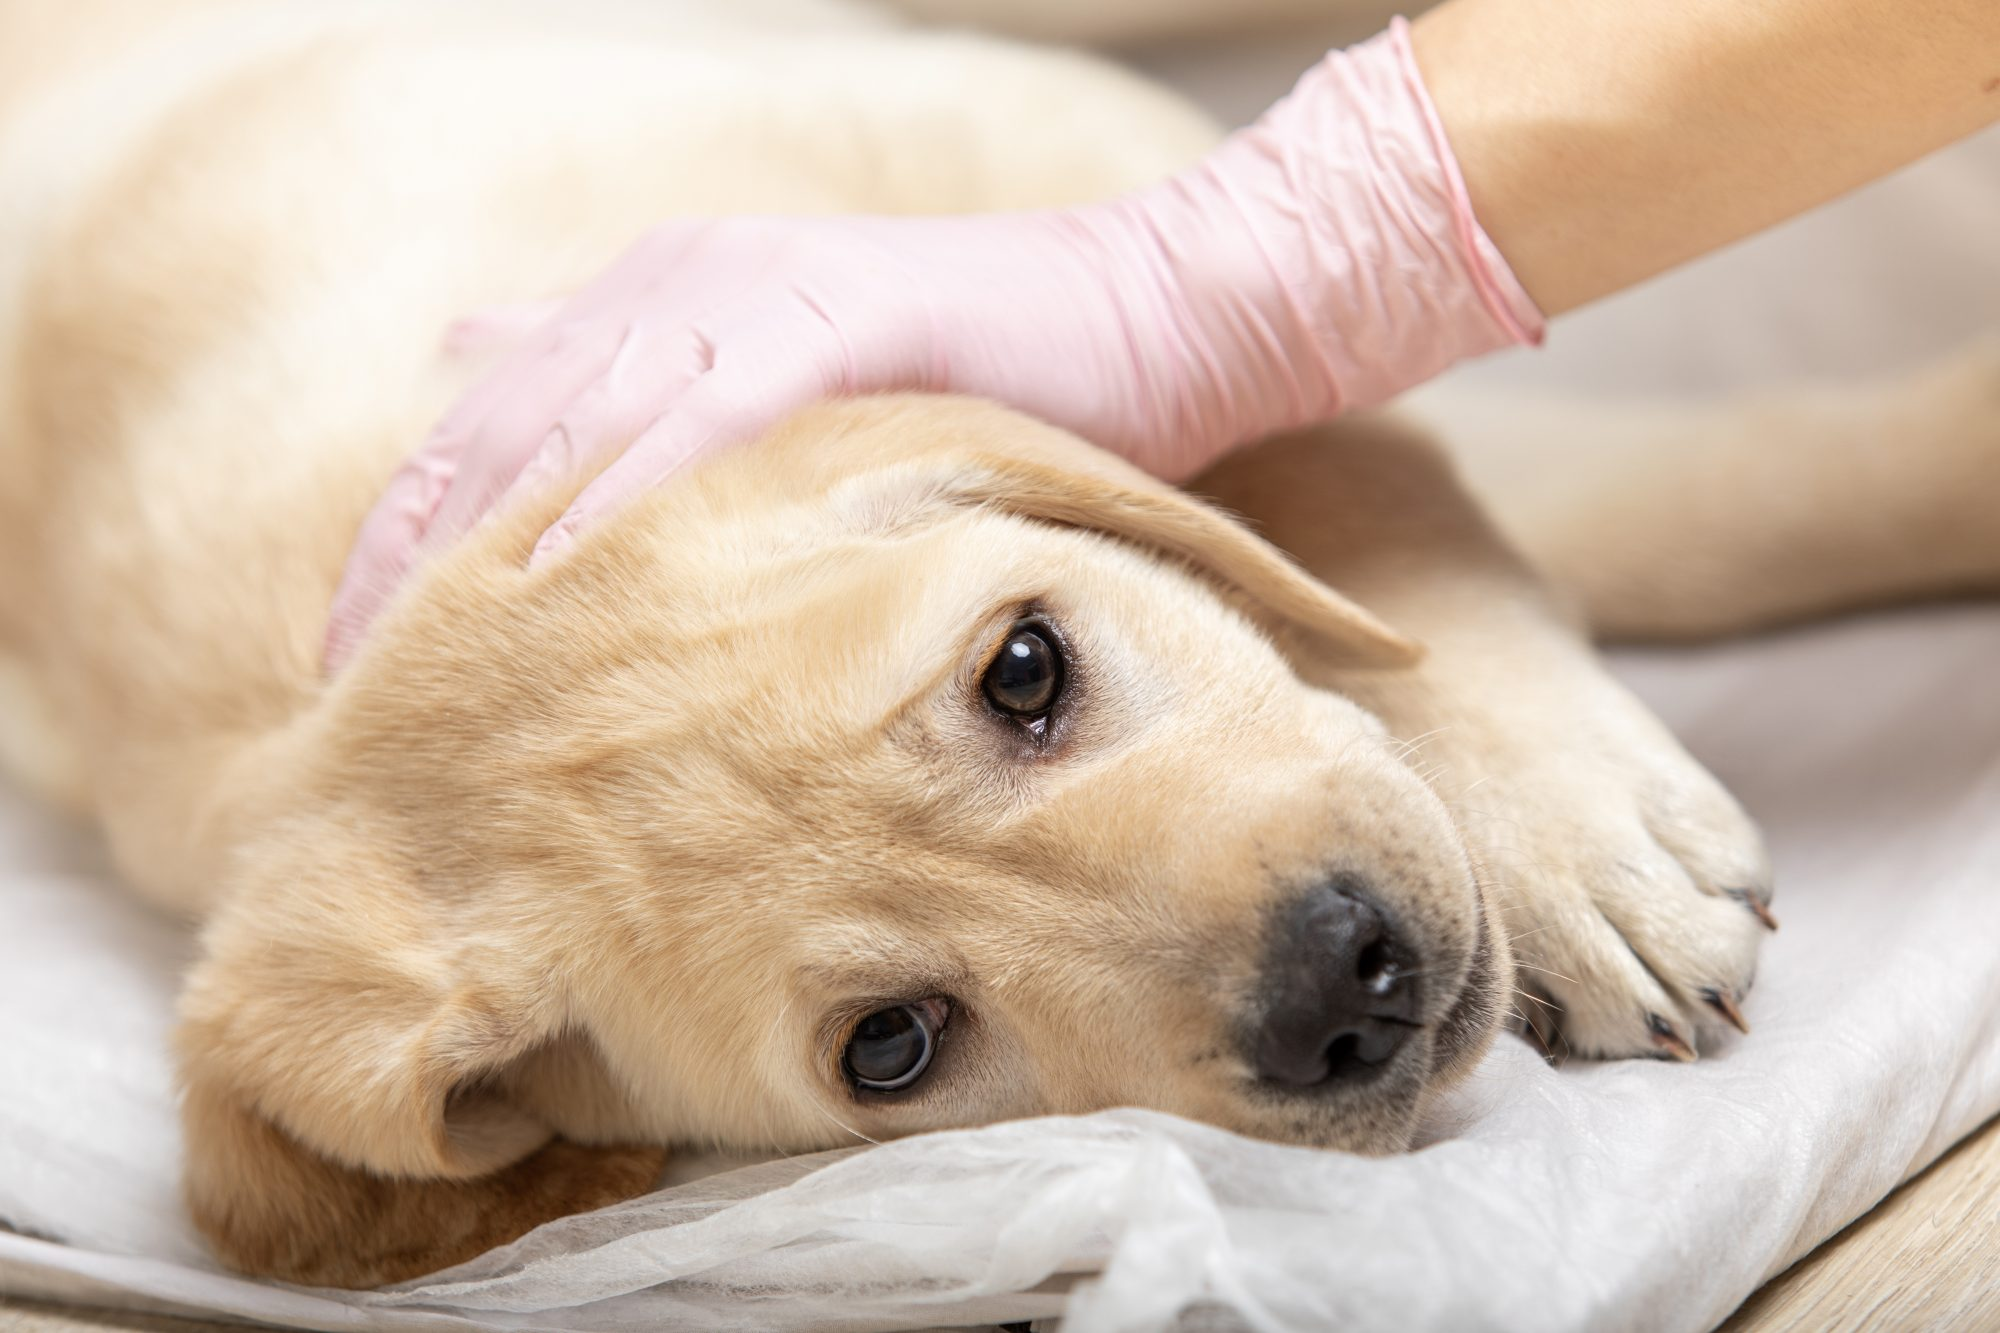 labrador retriever puppy getting vaccinated on white background.